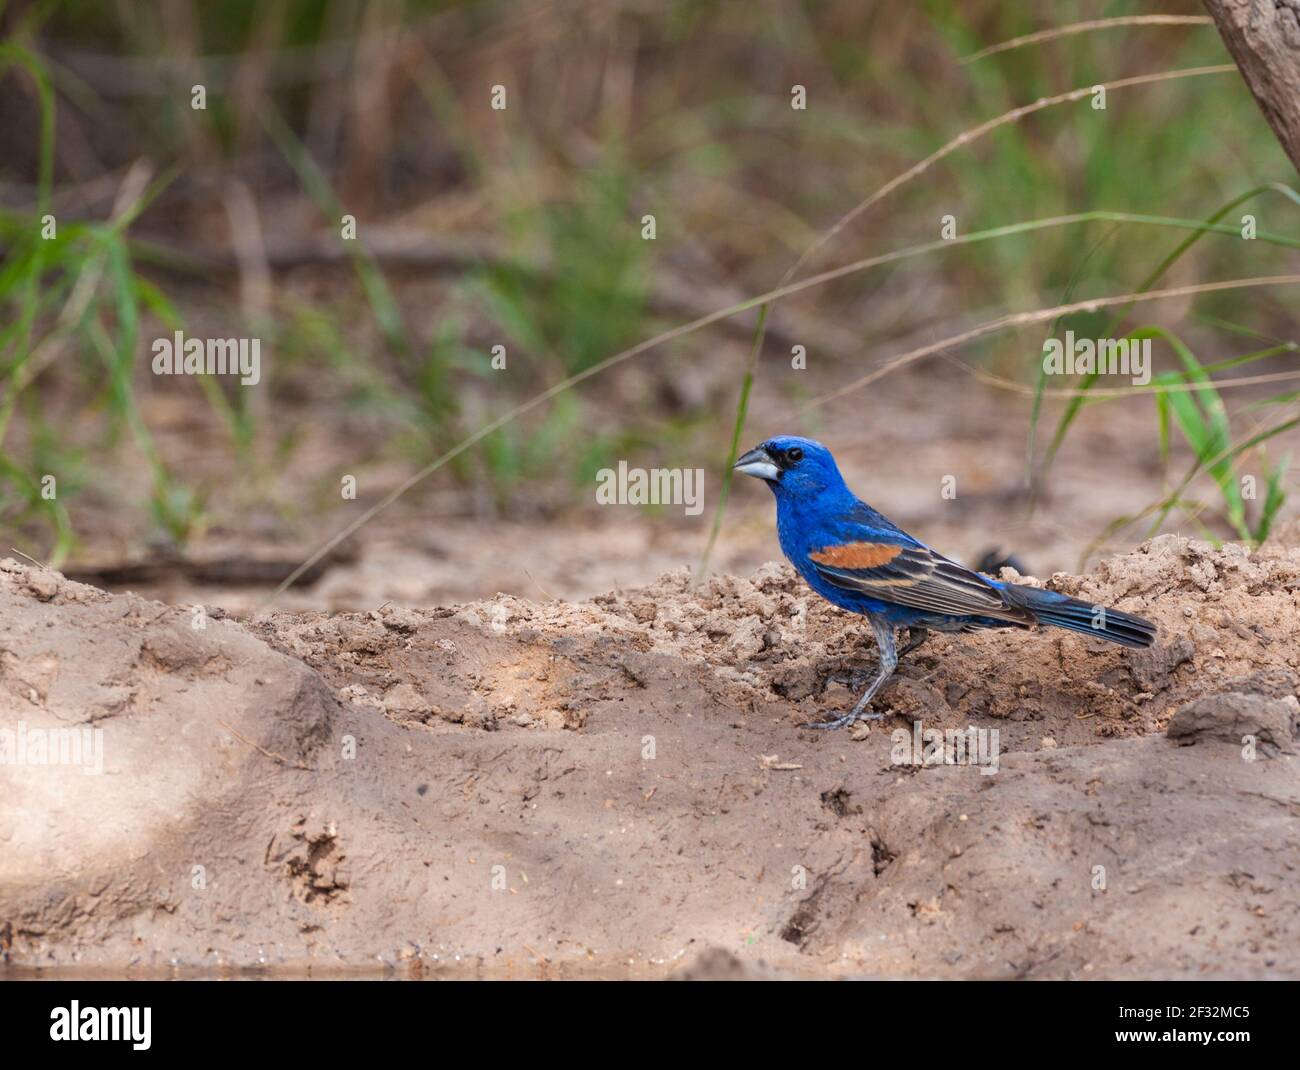 Blue Grosbeak, Passerina caerulea, looking for water and relief from summer heat at a ranch in South Texas. Stock Photo